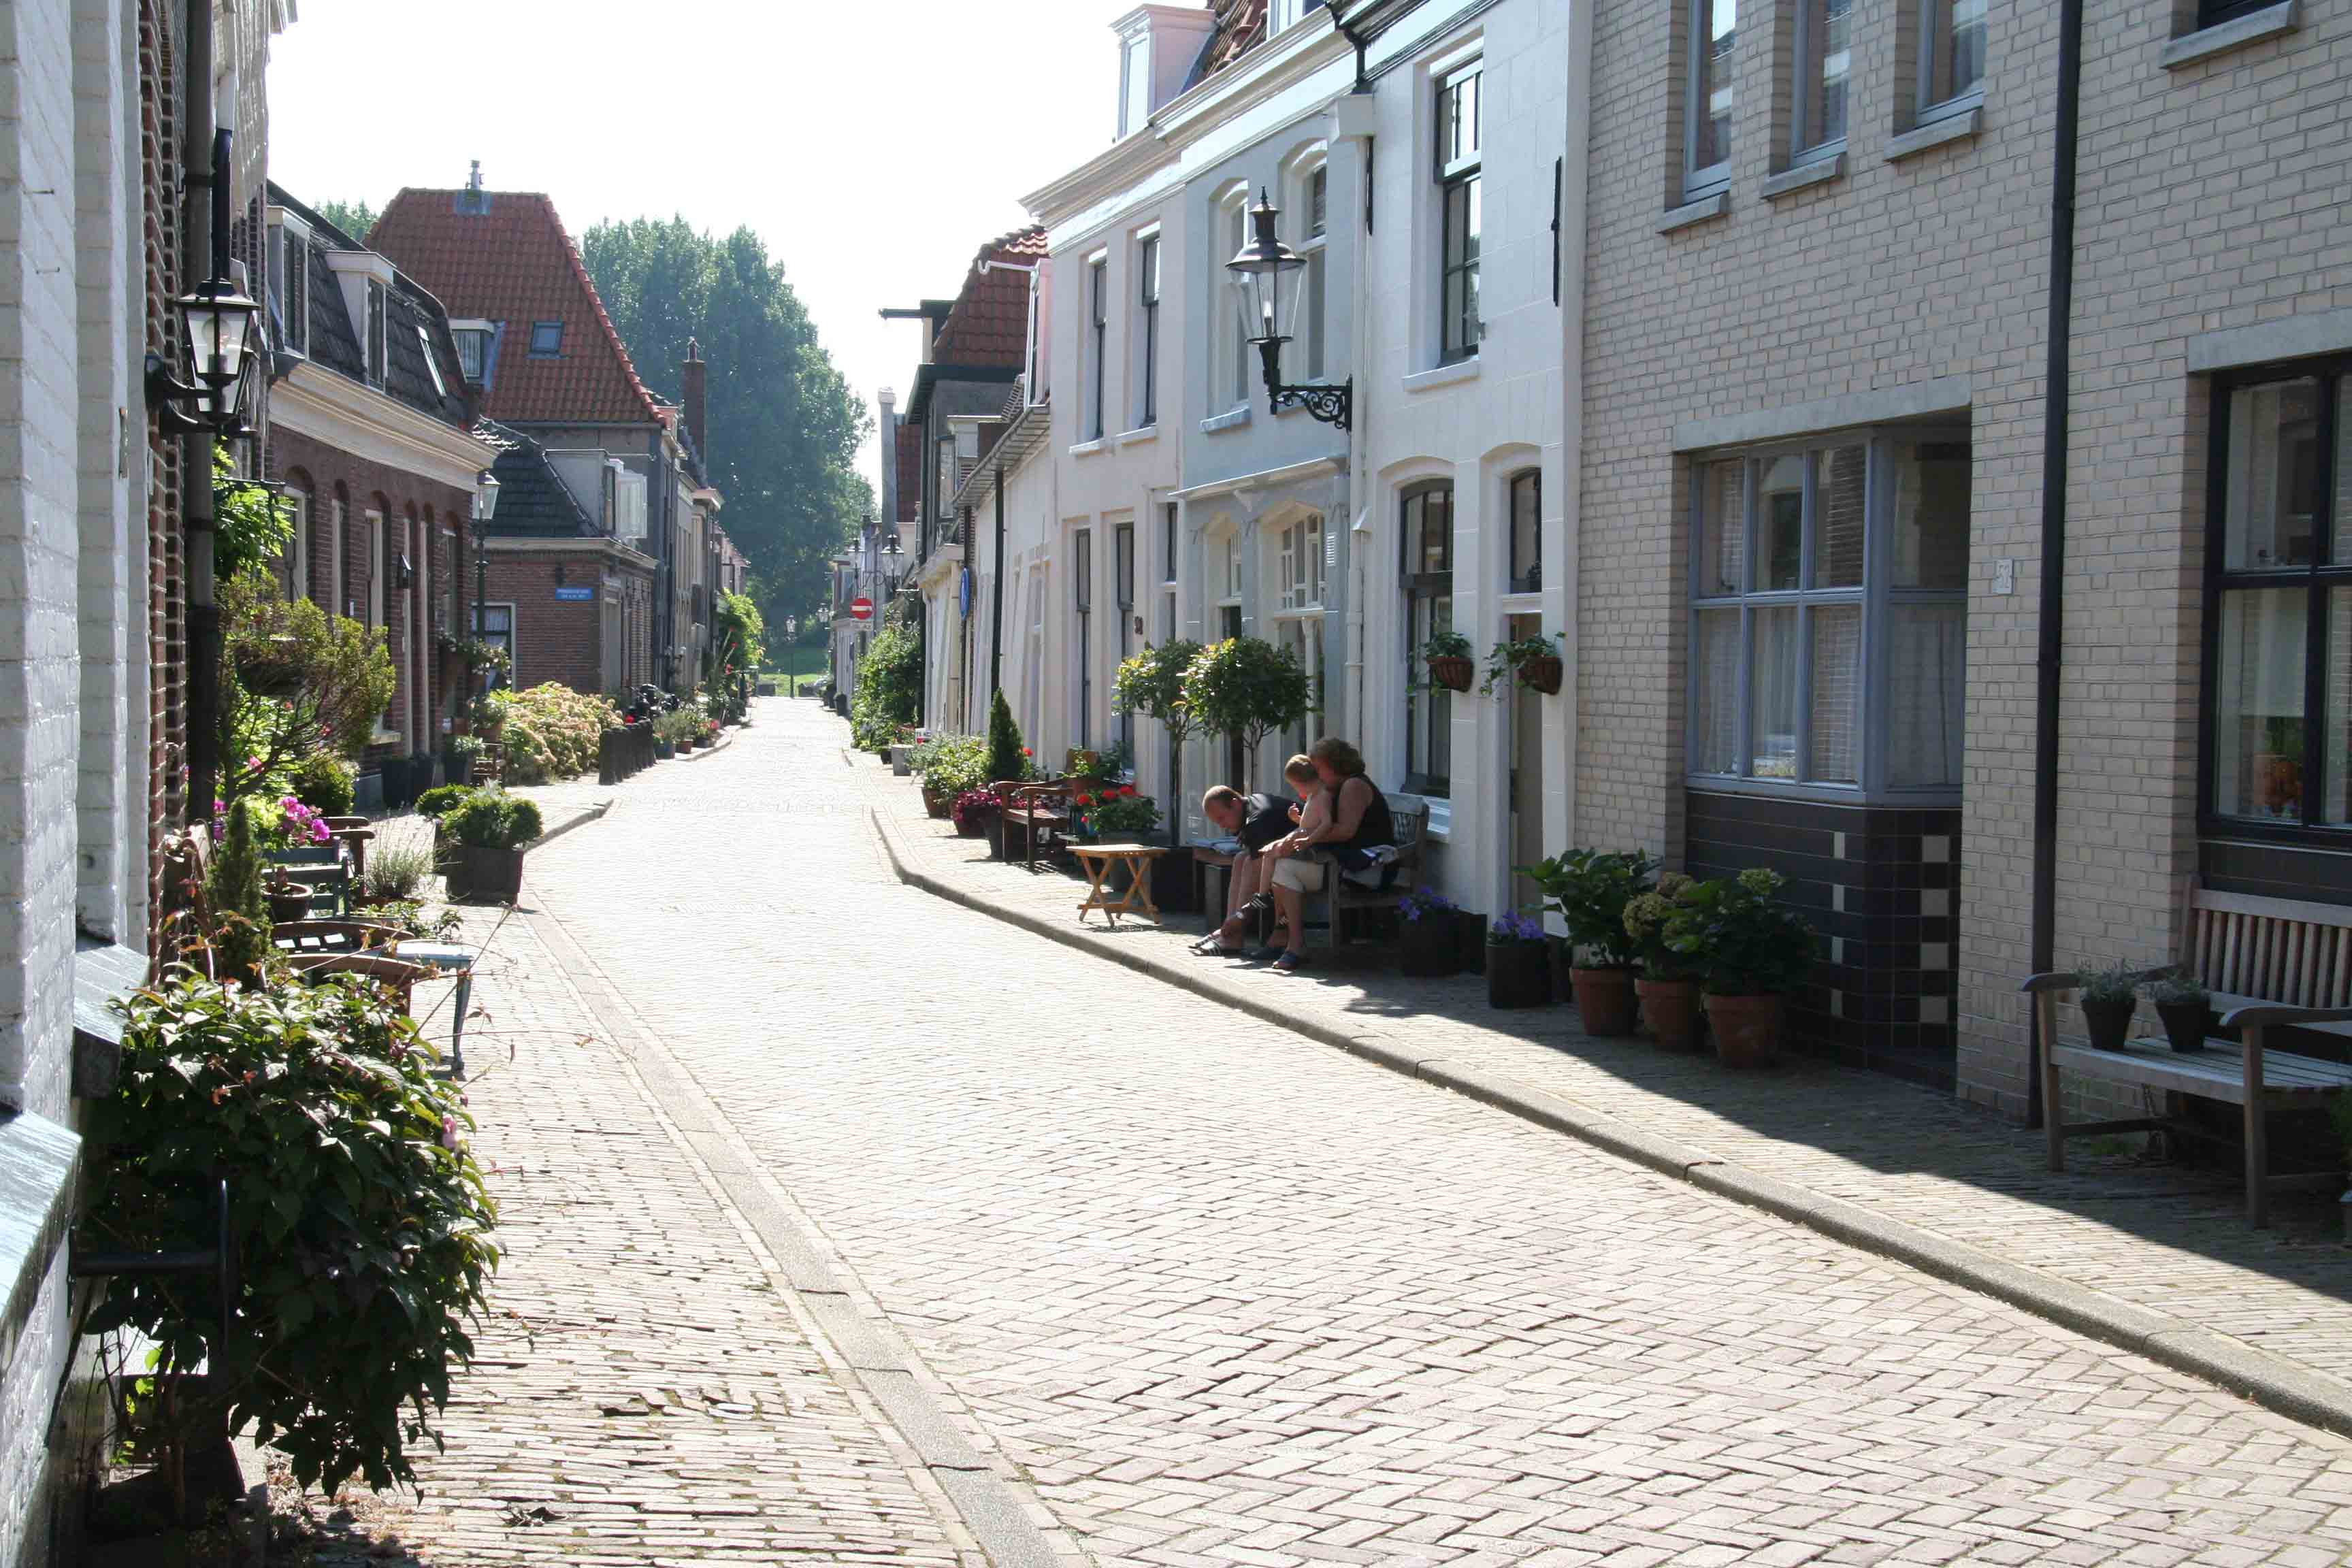 Photo from the old part of Weesp